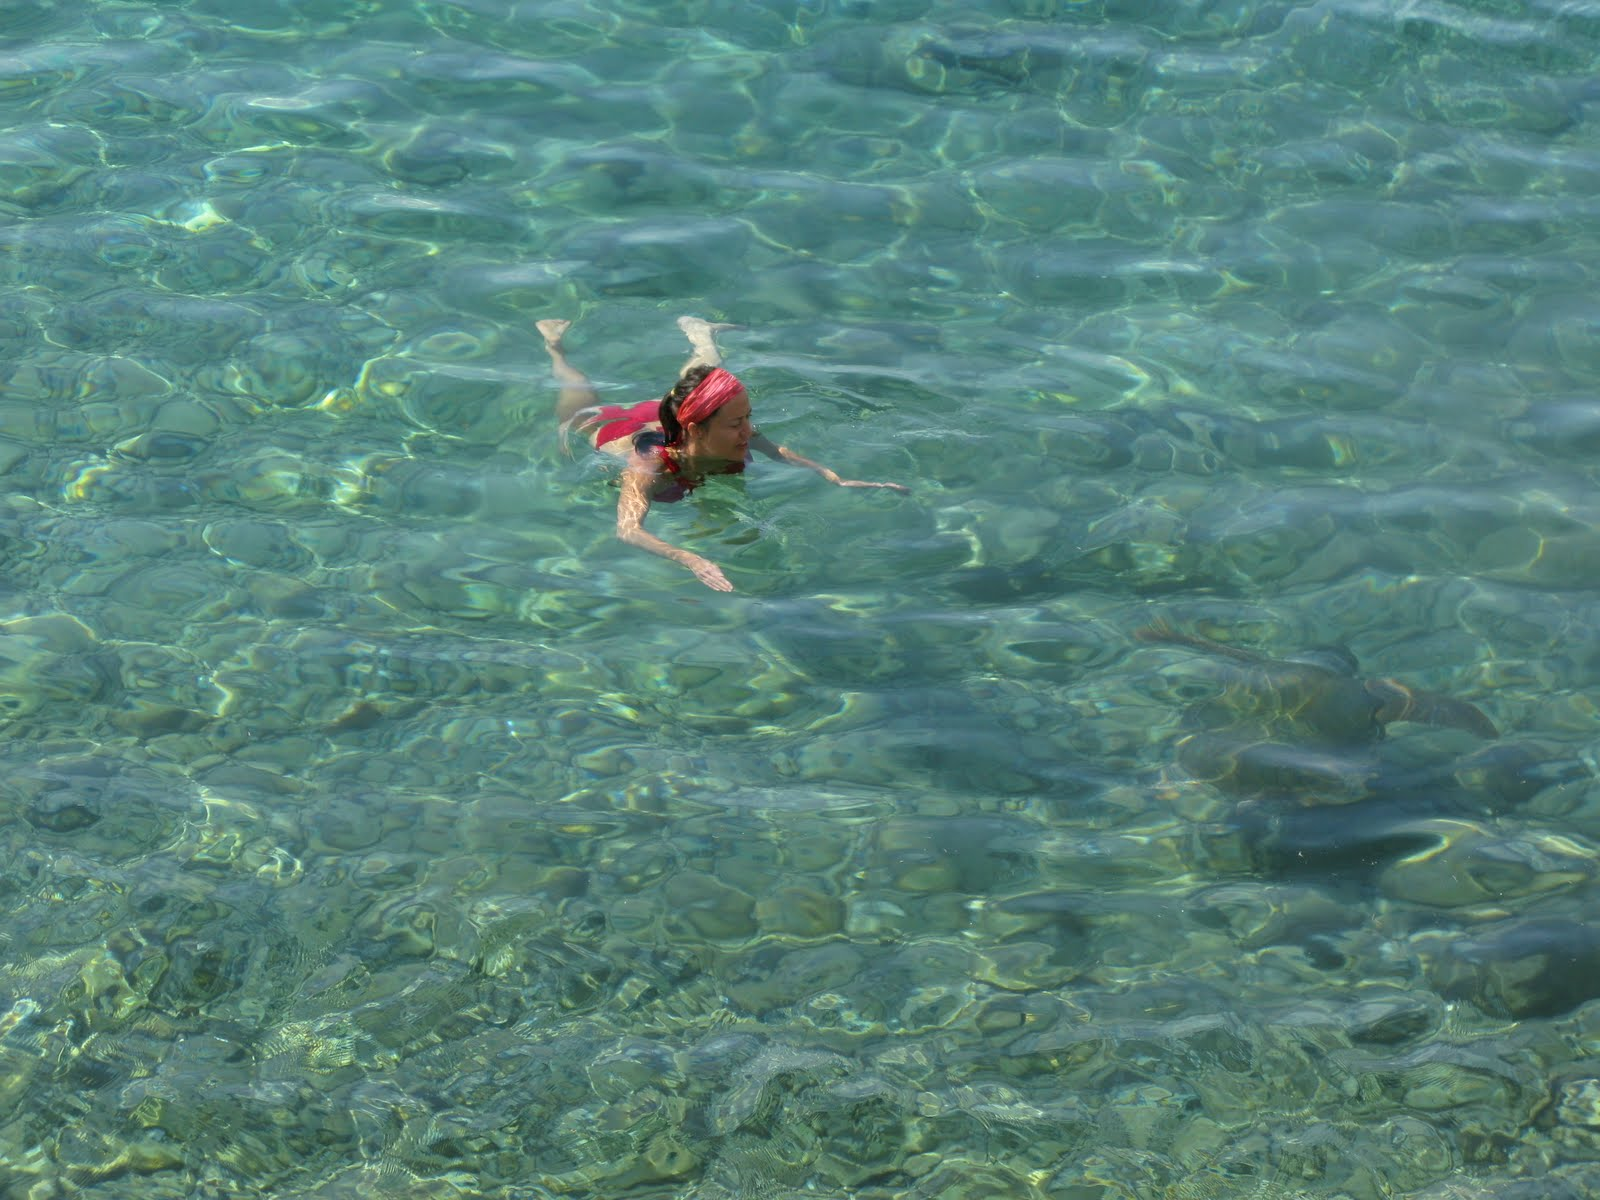 cooling swim in the clear water